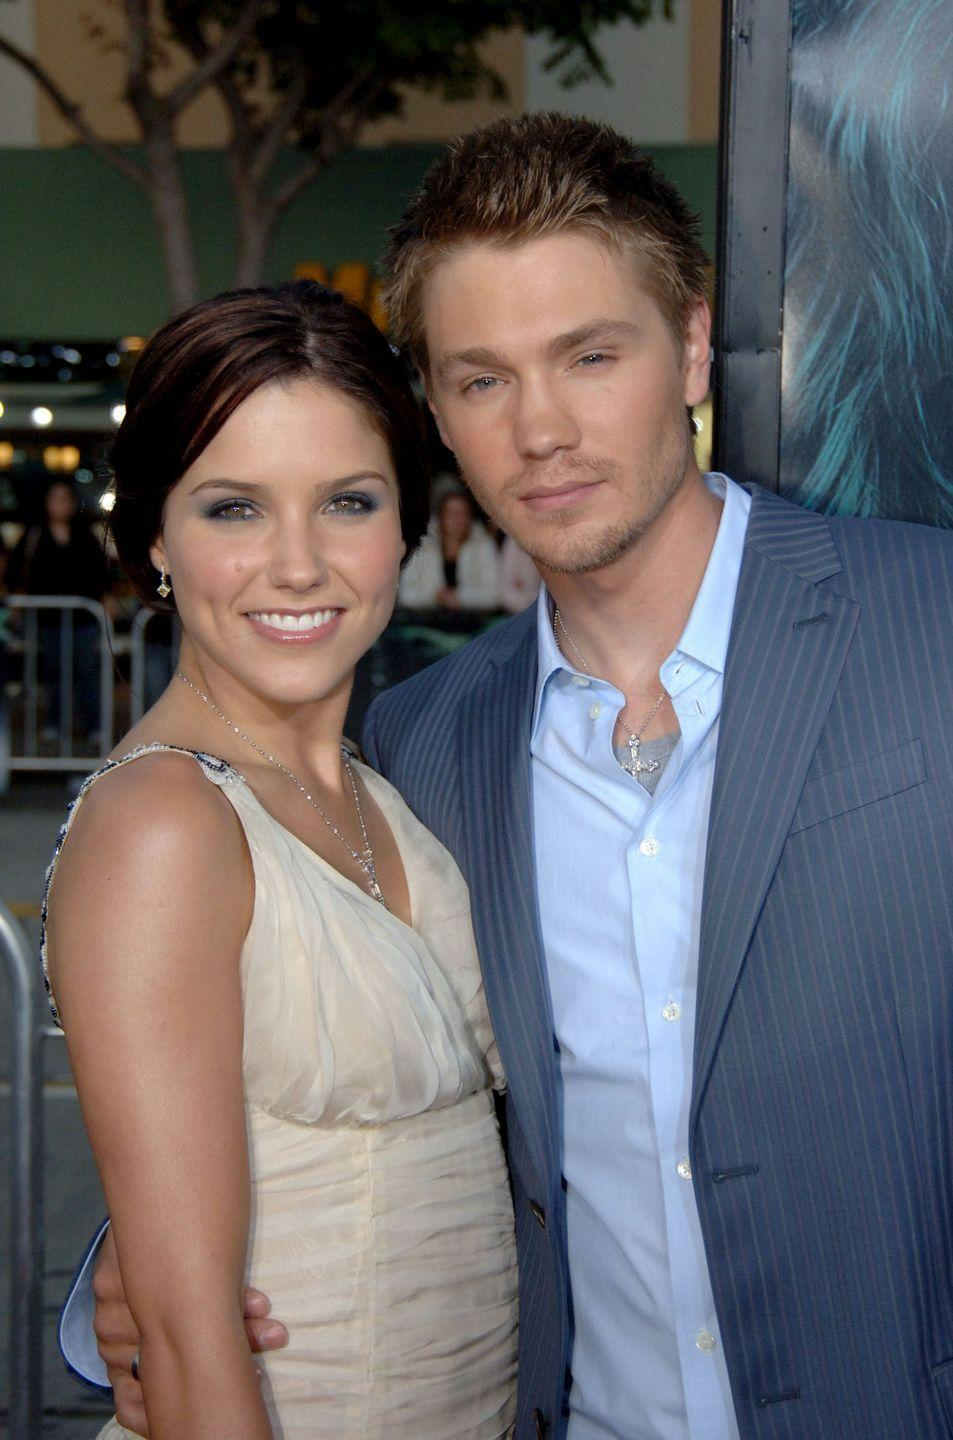 """<p>Appearing on <a href=""""https://www.huffingtonpost.com/2014/01/07/sophia-bush-chad-michael-murray_n_4556731.html"""" rel=""""nofollow noopener"""" target=""""_blank"""" data-ylk=""""slk:Watch What Happens Live With Andy Cohen"""" class=""""link rapid-noclick-resp"""">Watch What Happens Live With Andy Cohen</a>, Sophia said of her ex-husband Chad (they married and divorced in 2005), 'My mother once said to me that if you don't have anything nice to say, not to say anything at all.'</p><p> She later added that marrying her One Tree Hill co-star was a bad idea. 'For me, my job is my priority, and so it really helped me just let go of it and be like, """"Look, at the end of the day, we were two stupid kids who had no business being in a relationship in the first place.""""'</p>"""